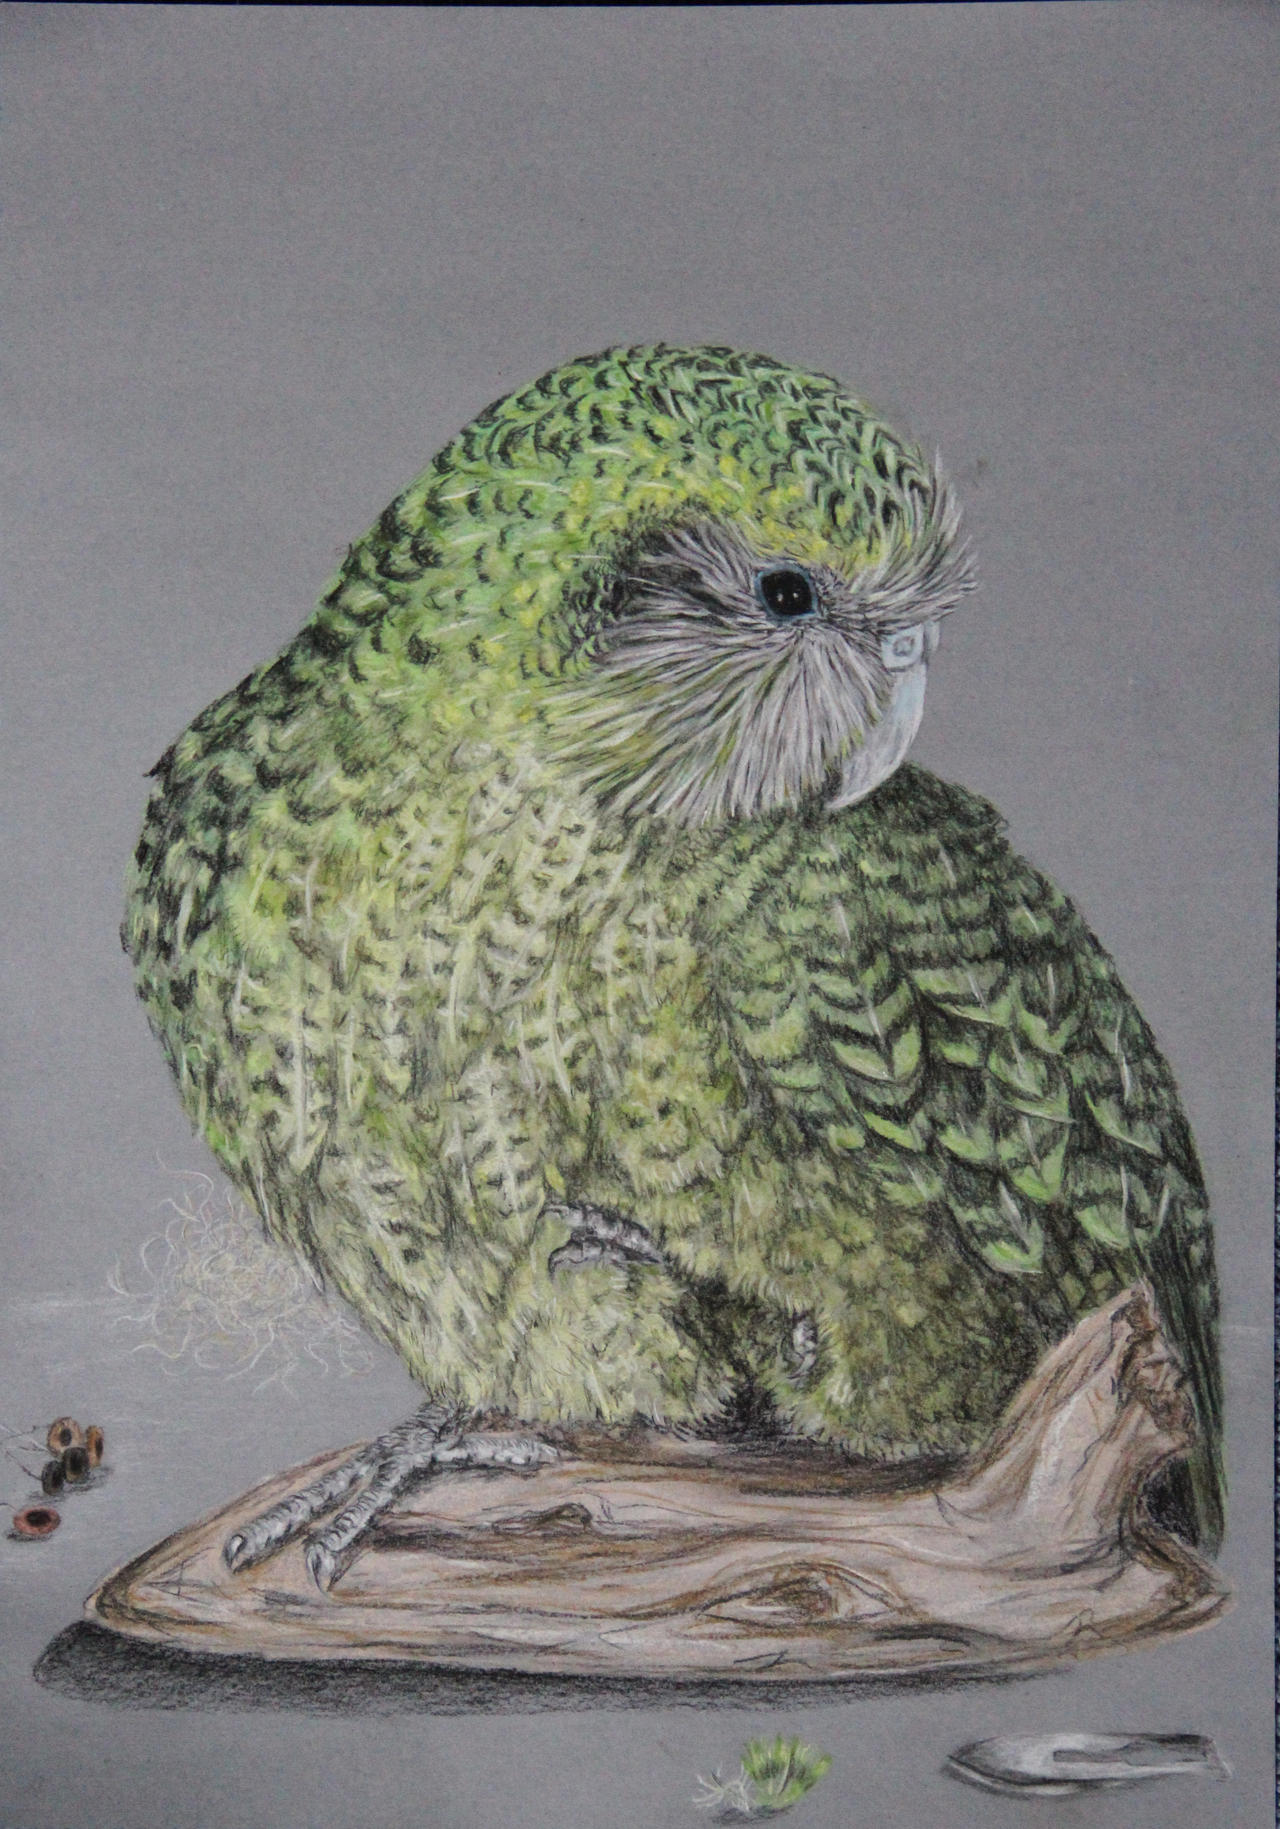 kakapo by cola93 on DeviantArt